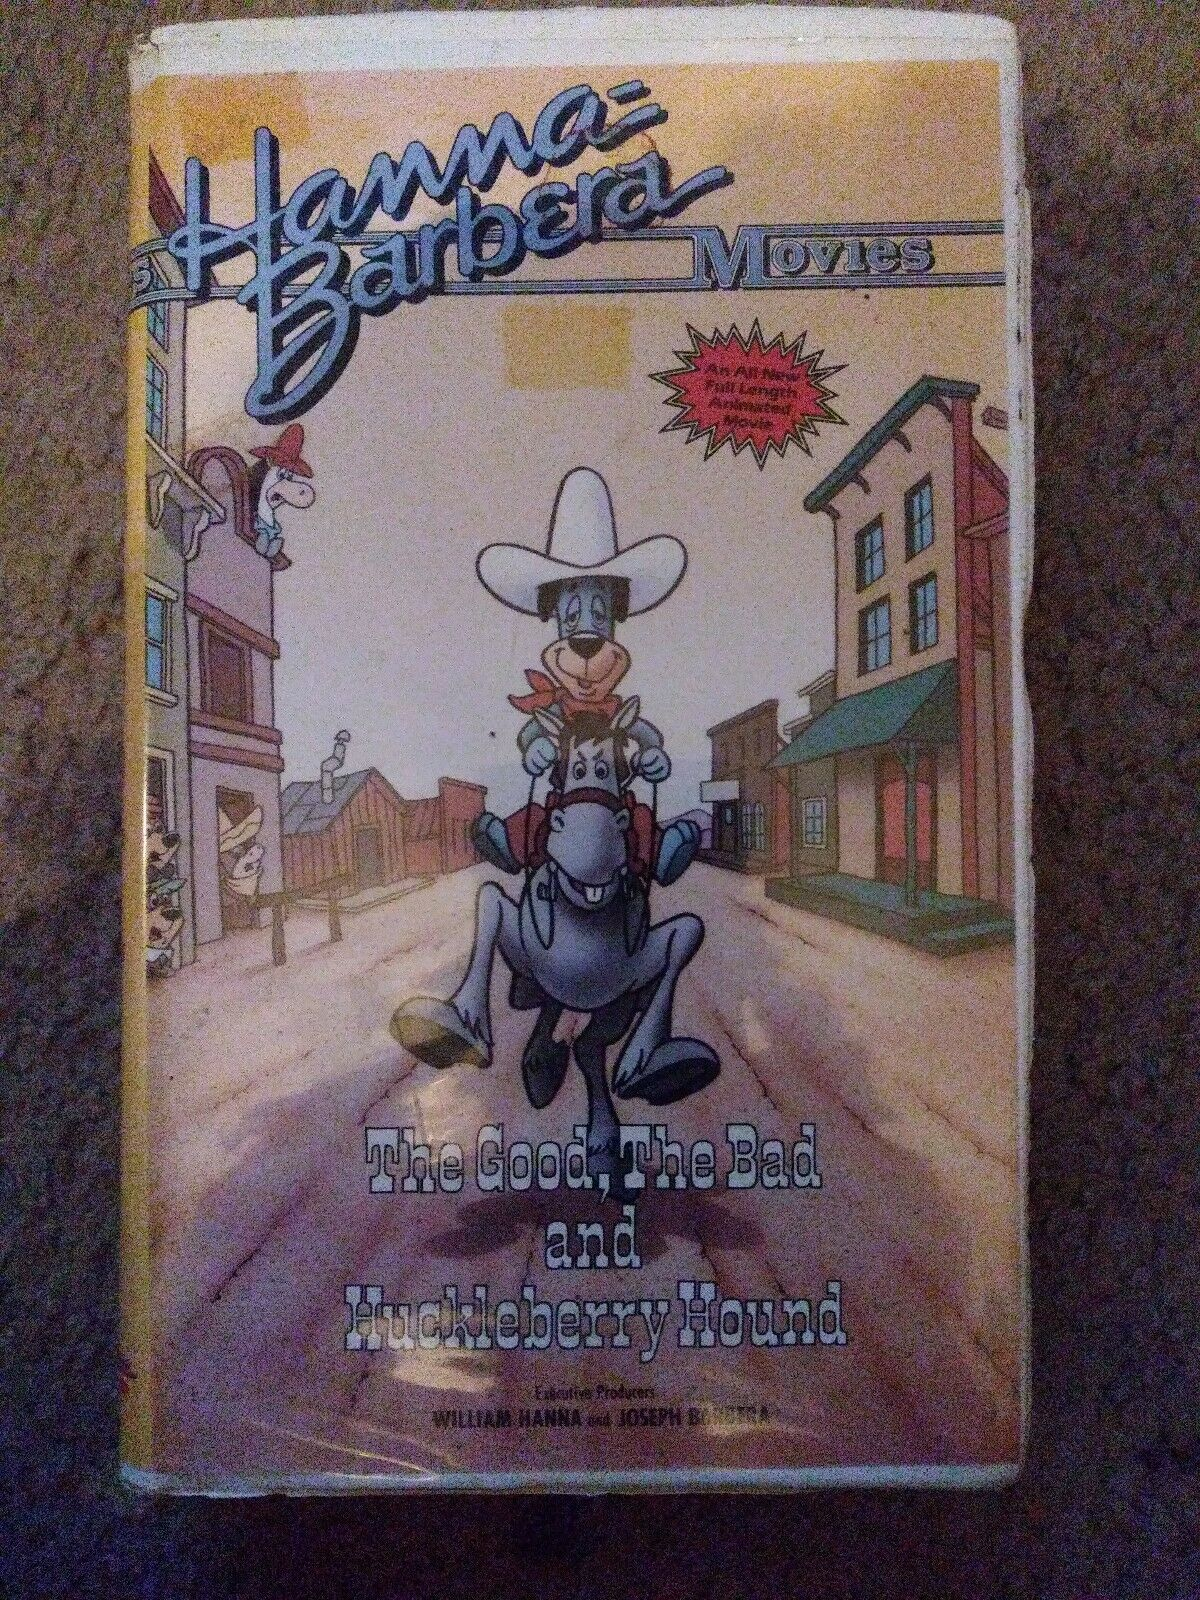 The Good, the Bad, and Huckleberry Hound (1988 VHS)